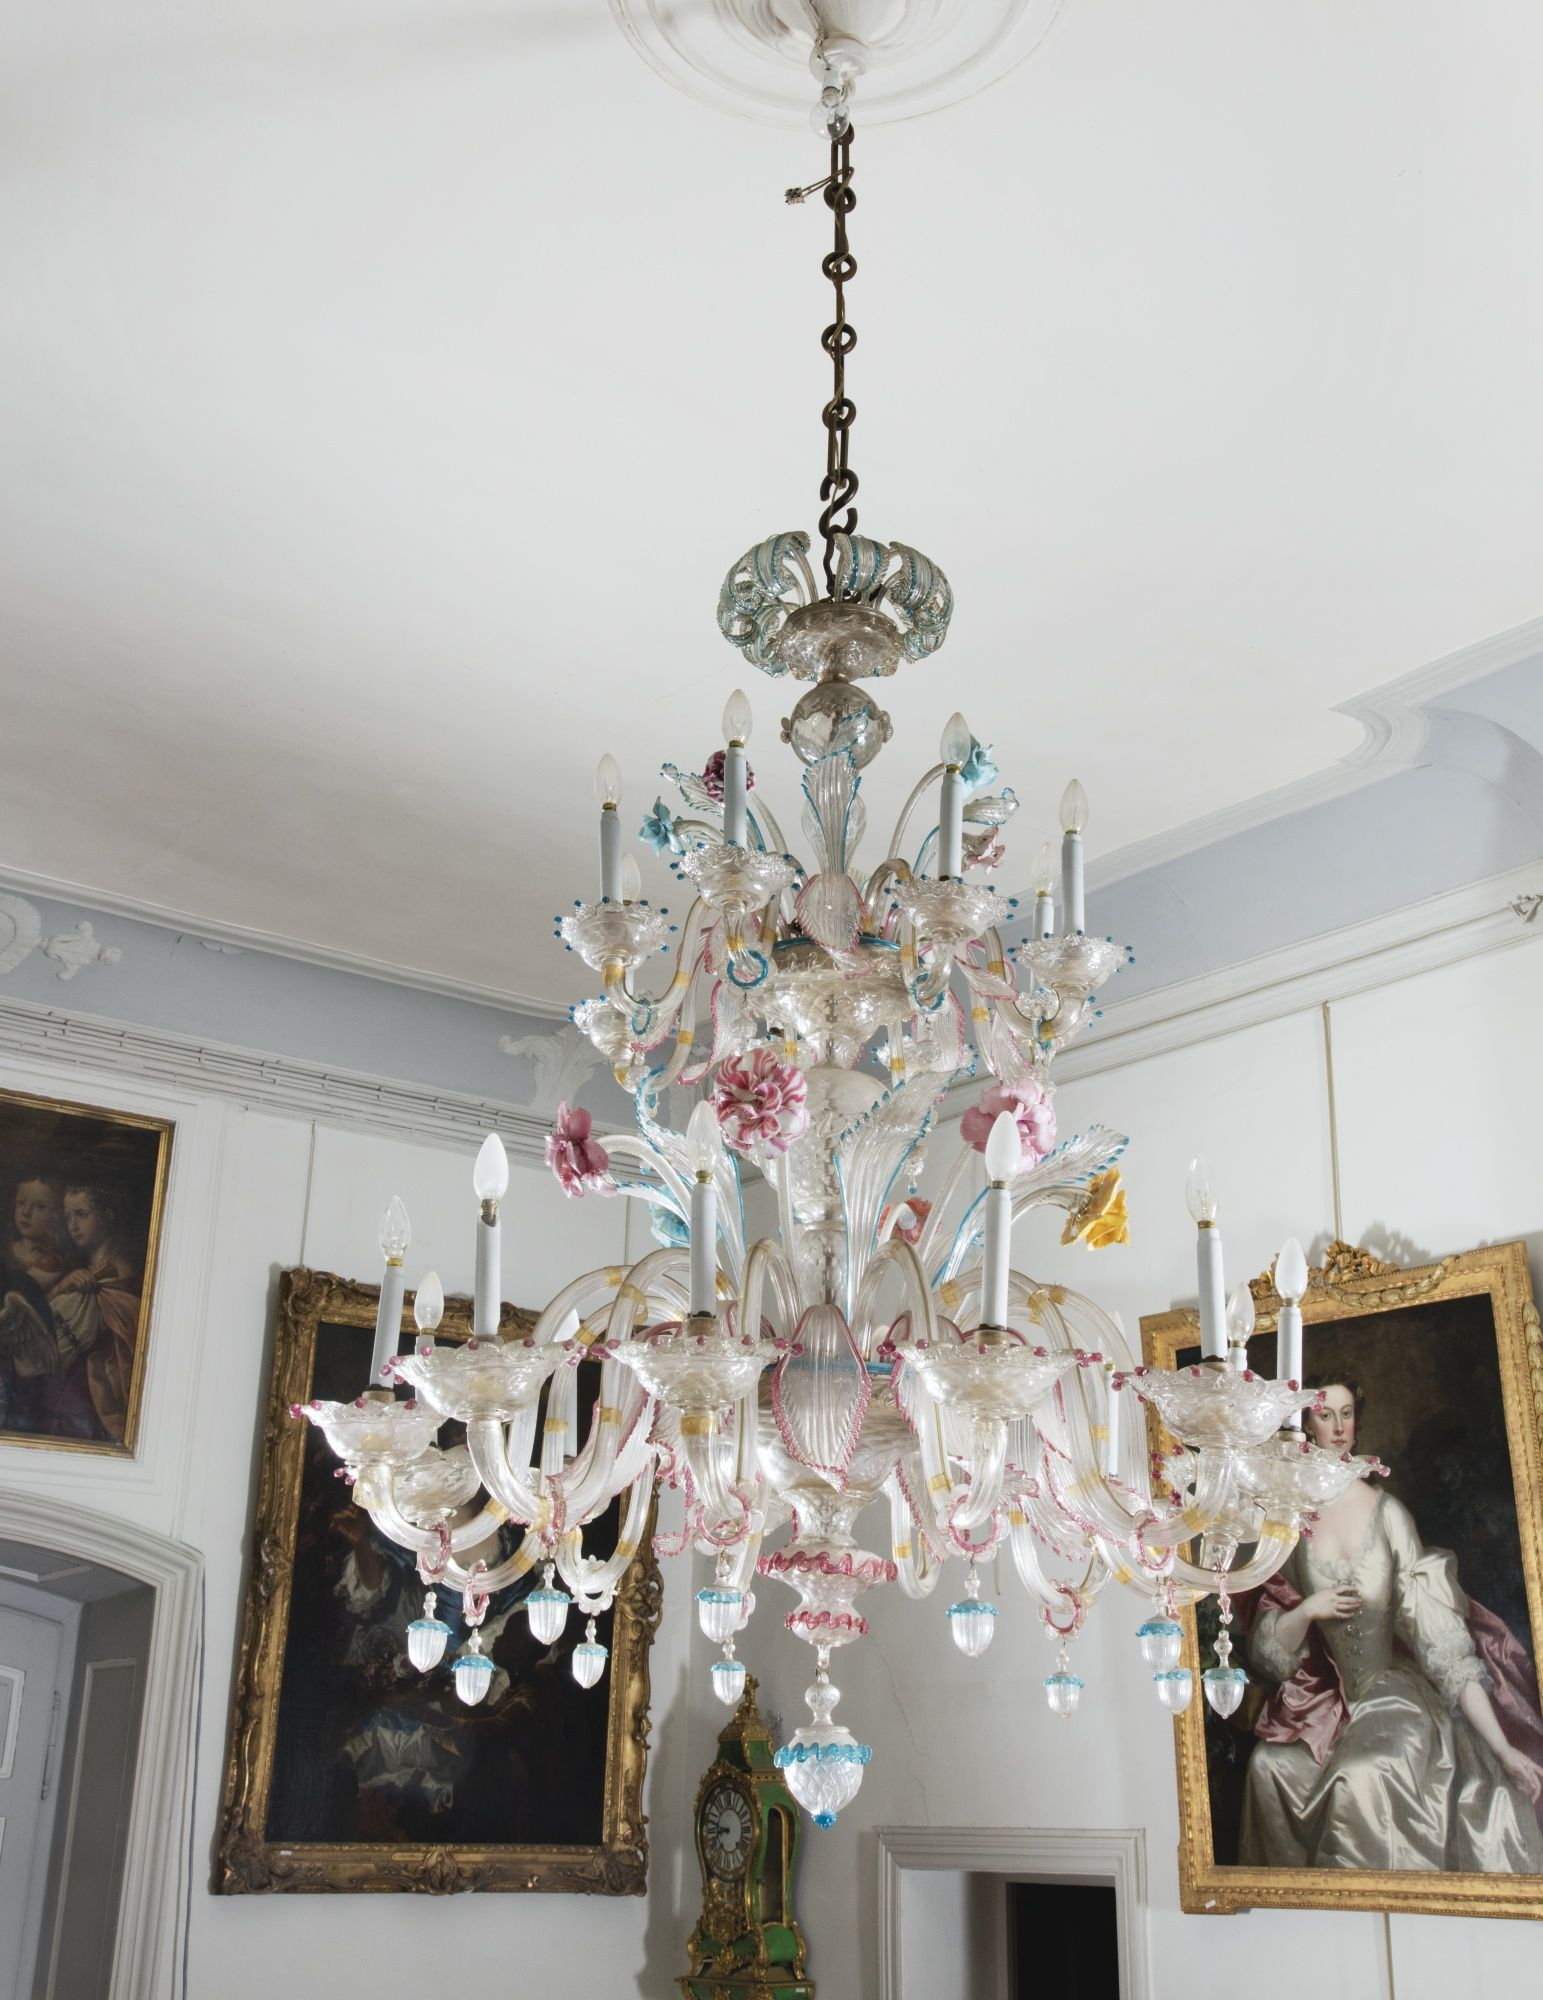 A Venetian Twenty Lights Murano Glass Chandelier Late 19th Century